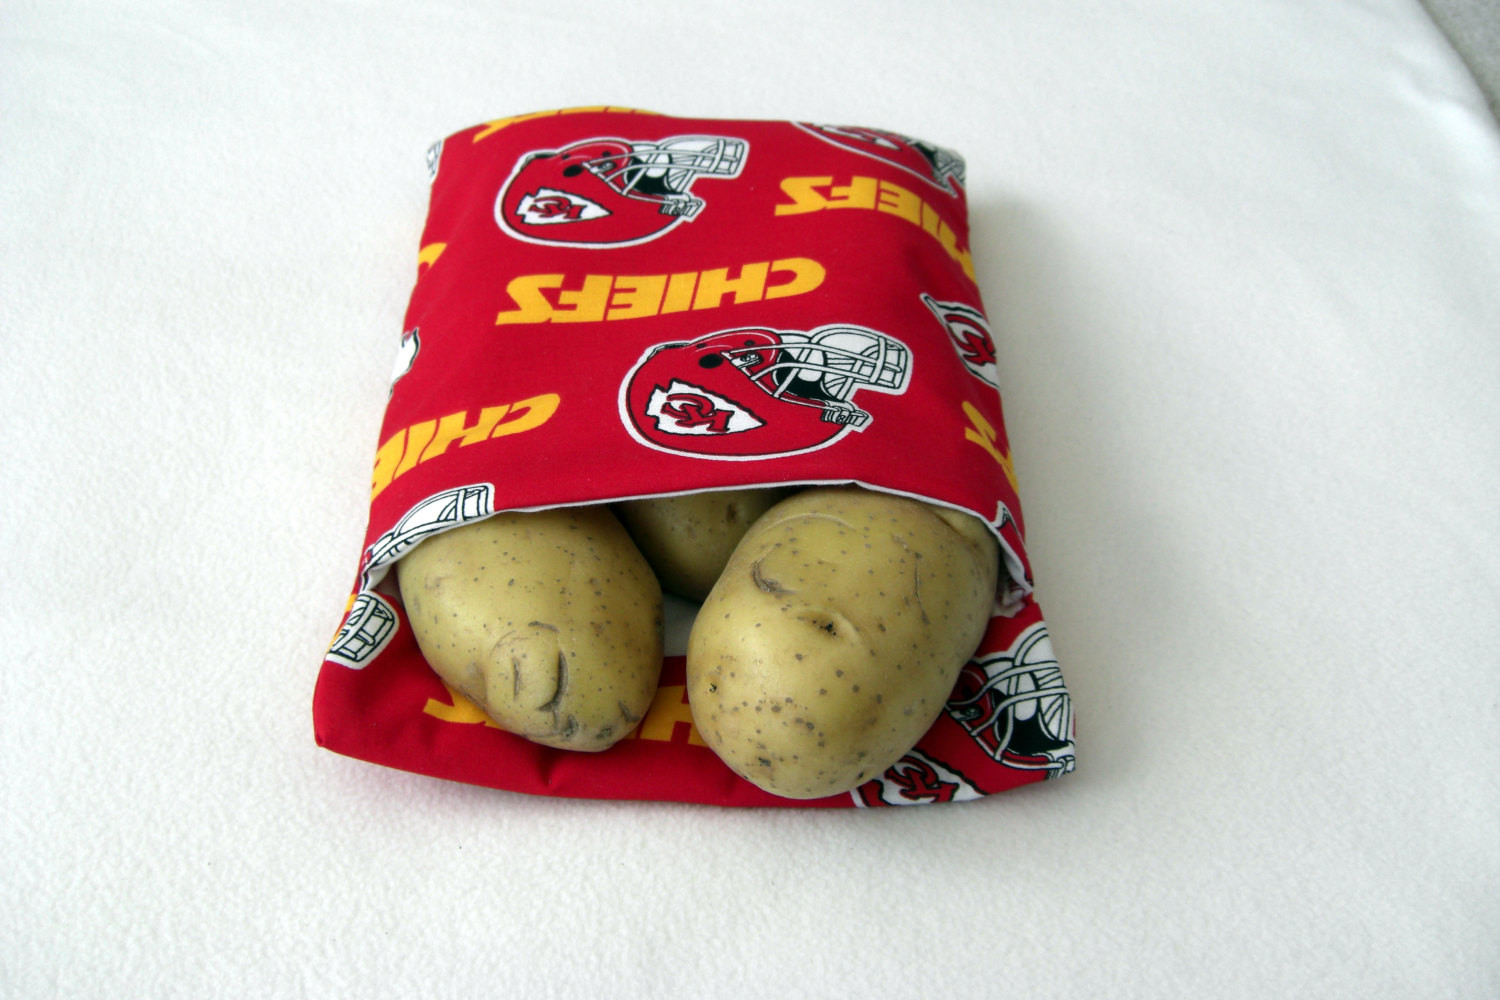 Baked Potato In Microwave Ziplock Bag  Kansas City Chiefs Microwave Baked Potato Bag